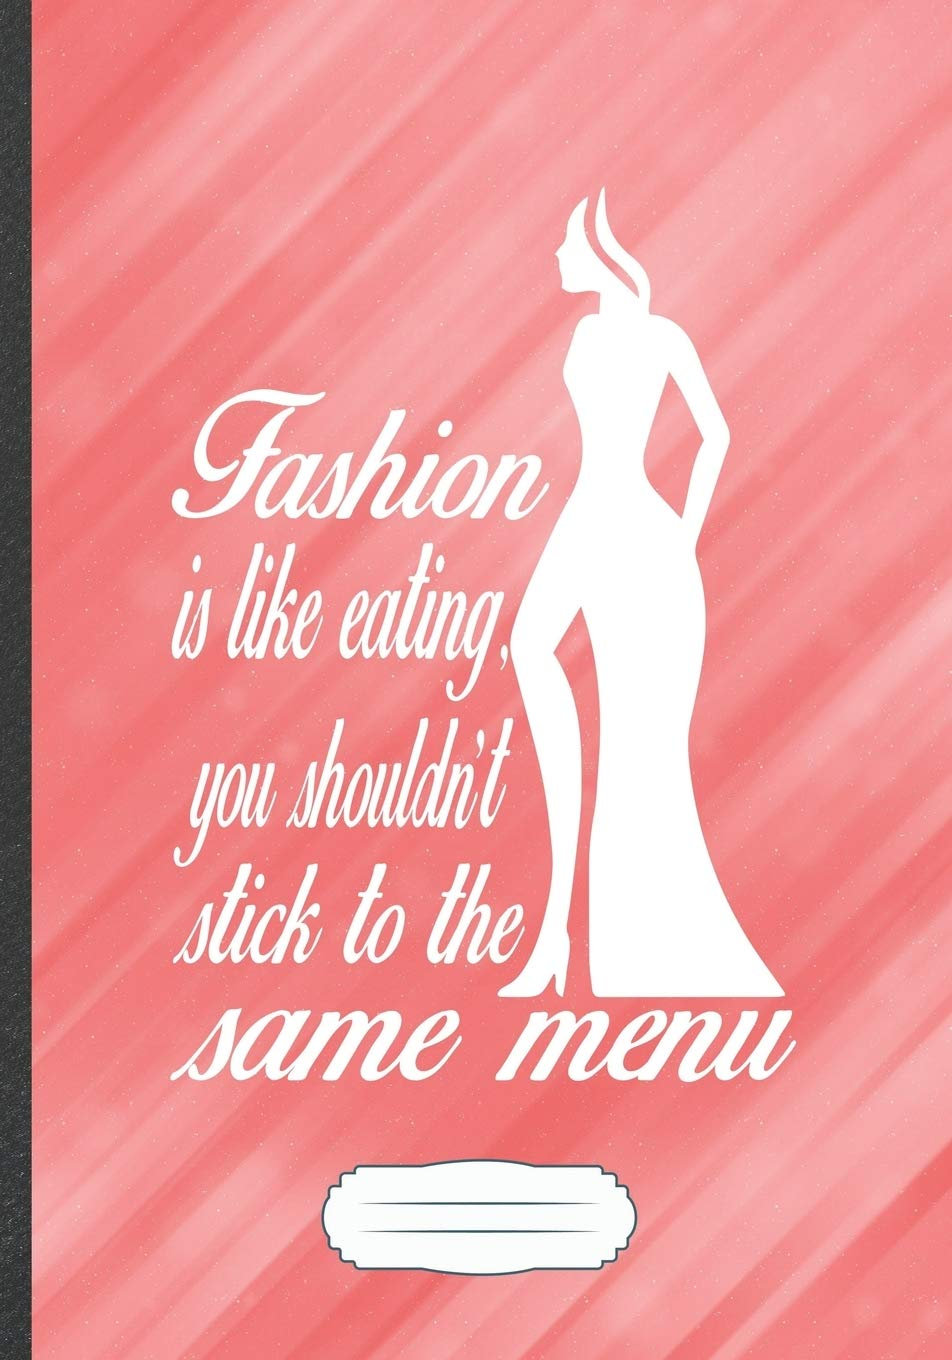 Amazon Com Fashion Is Like Eating You Shouldn T Stick To The Same Menu Fashion Designer Funny Lined Notebook Journal For Street Fashion Unique Special Birthday Gift Popular B5 7x10 110 Pages 9781694796882